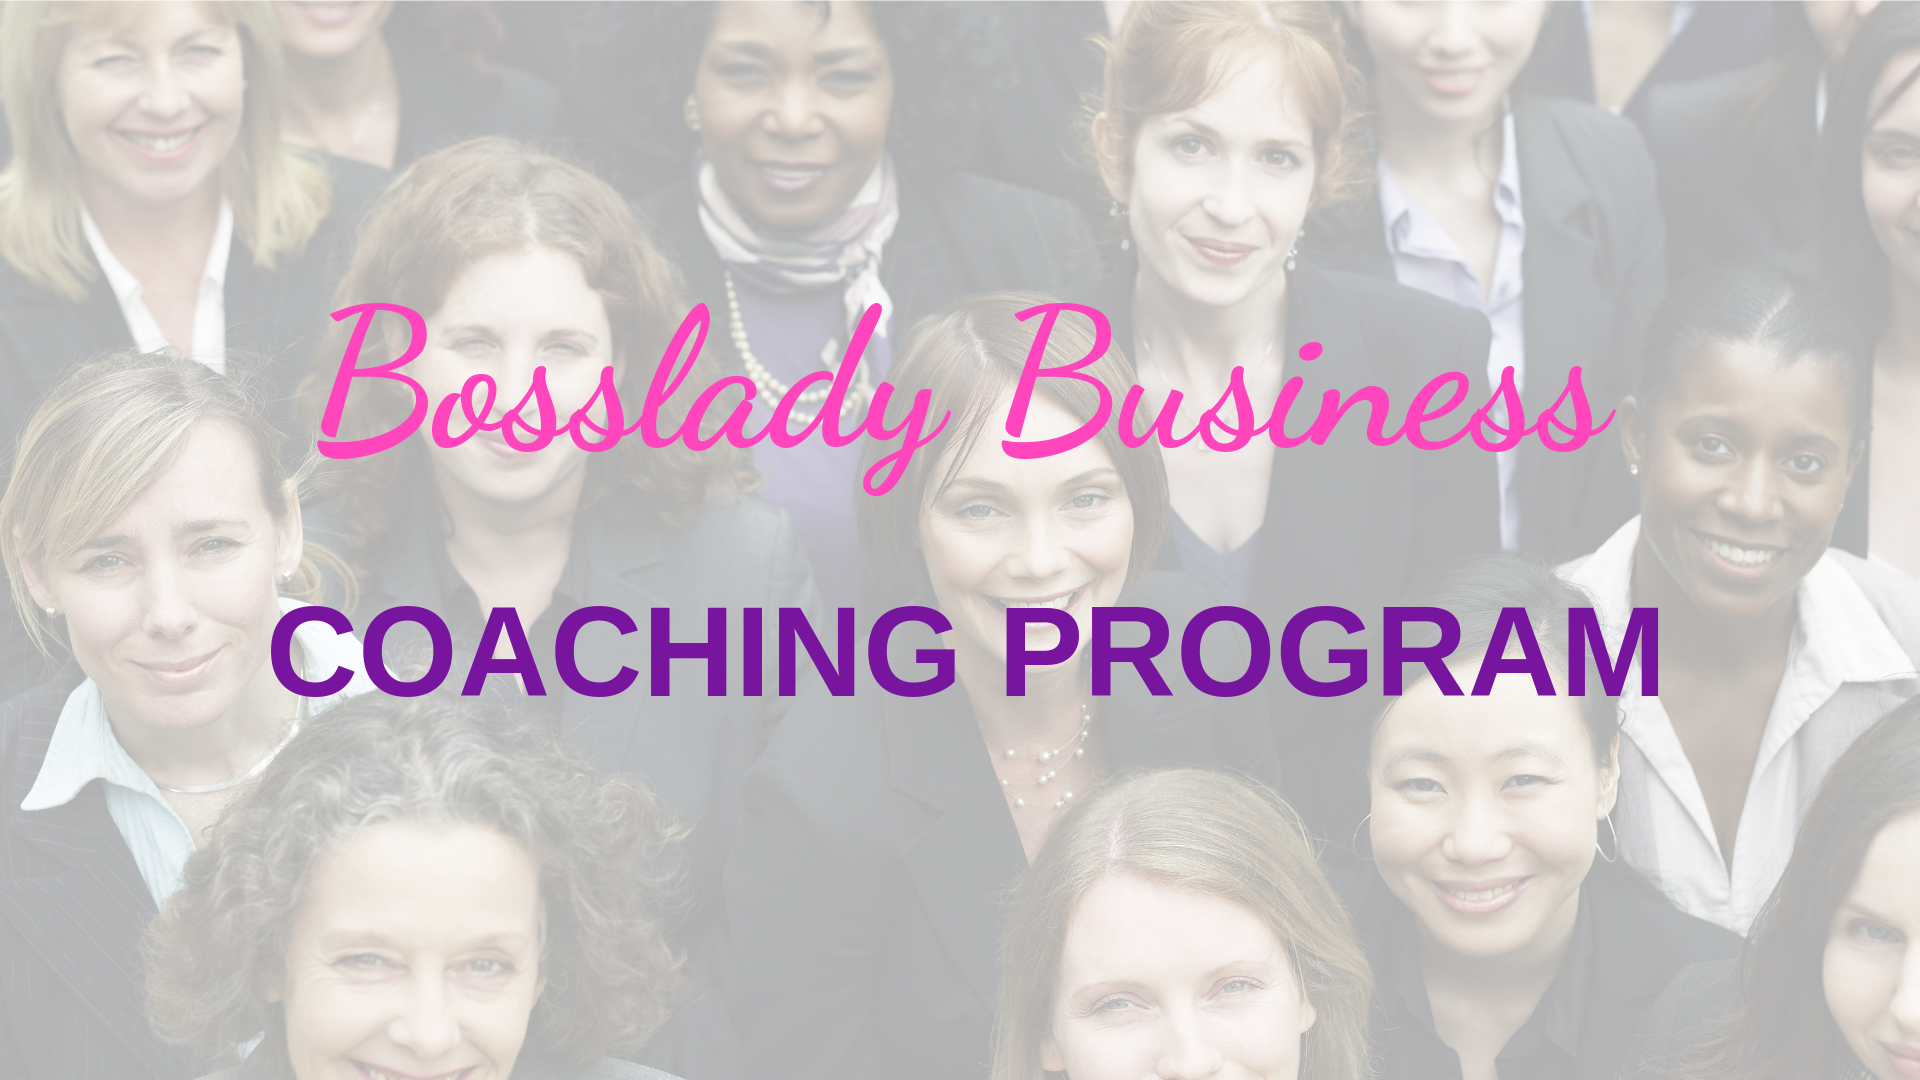 Bosslady Business Coaching Program group of multicultural women.